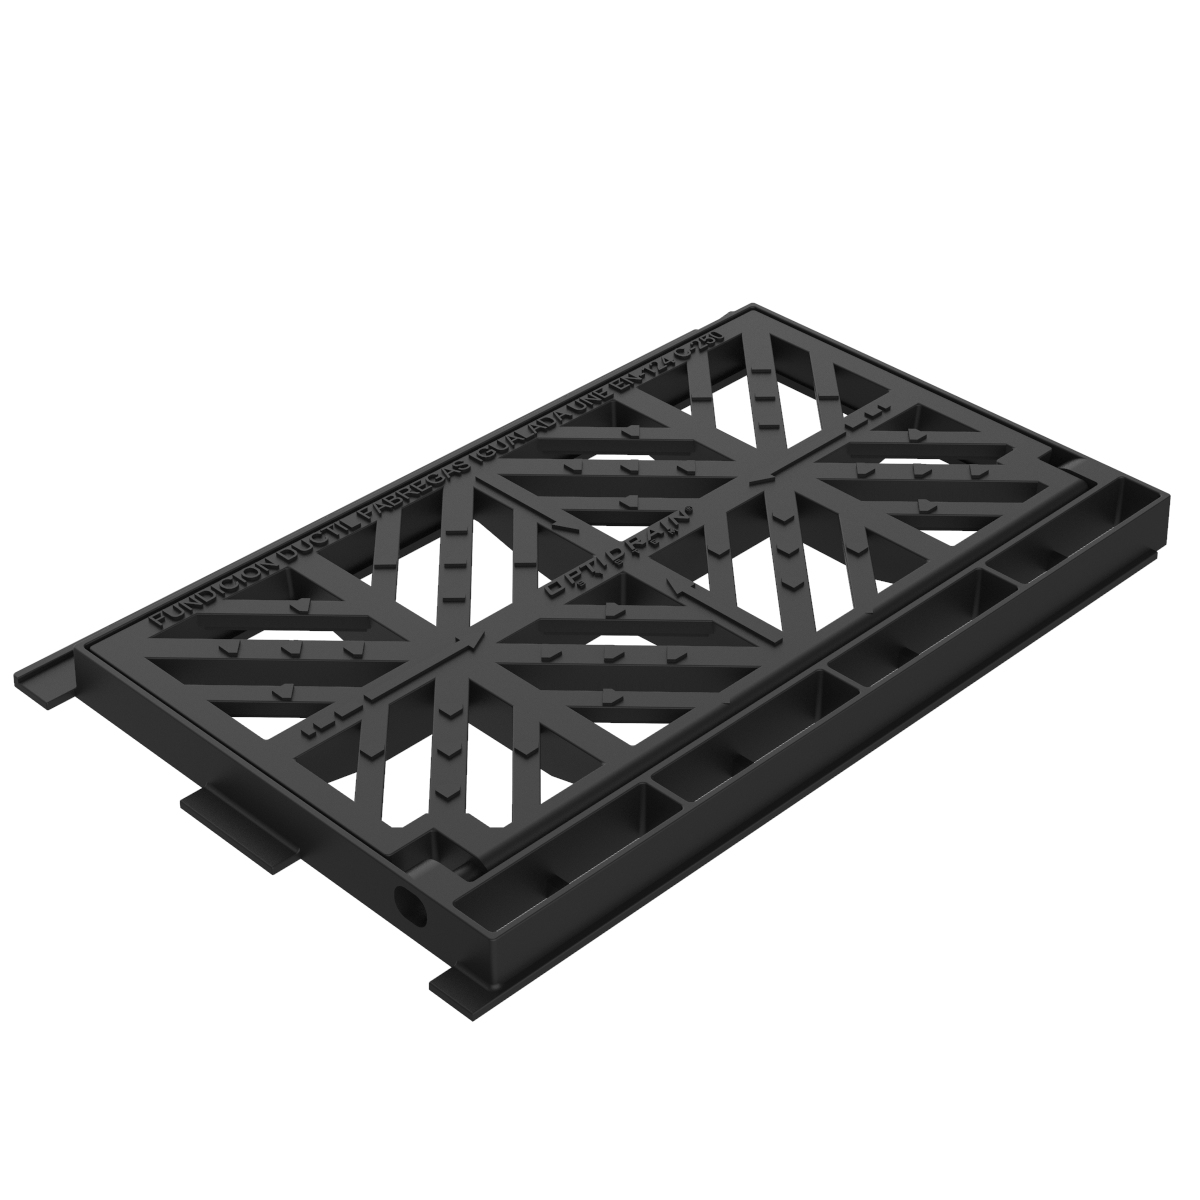 Optidrain folding scupper grate and frame of ductile casting B-19ADO